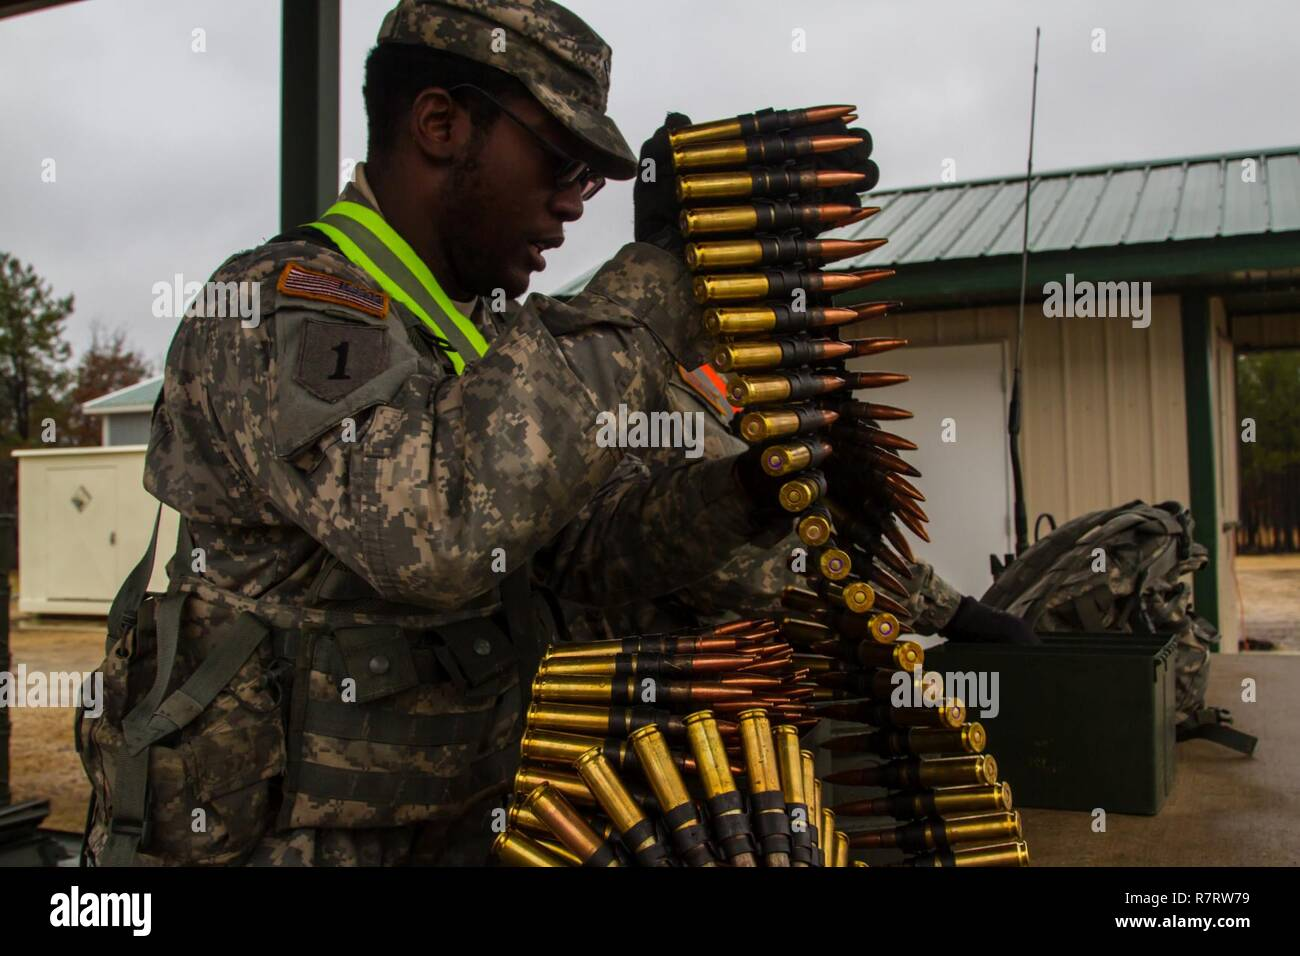 US Army Reserve Spc. Calvin Gray a motor transport operator with the 416th Theater Engineer Command and Pvt. 1st Class Donte Henderson a power generation equipment repairer with the 354th civil affairs company, 351st Civil Affairs Command prep .50 caliber machine gun ammunition to be given to the firing teams during a live fire exercise at Range 26 on Fort McCoy, Wis., for Operation Cold Steel, April 03, 2017. Operation Cold Steel is the U.S. Army Reserve's crew-served weapons qualification and validation exercise to ensure that America's Army Reserve units and Soldiers are trained and ready t Stock Photo